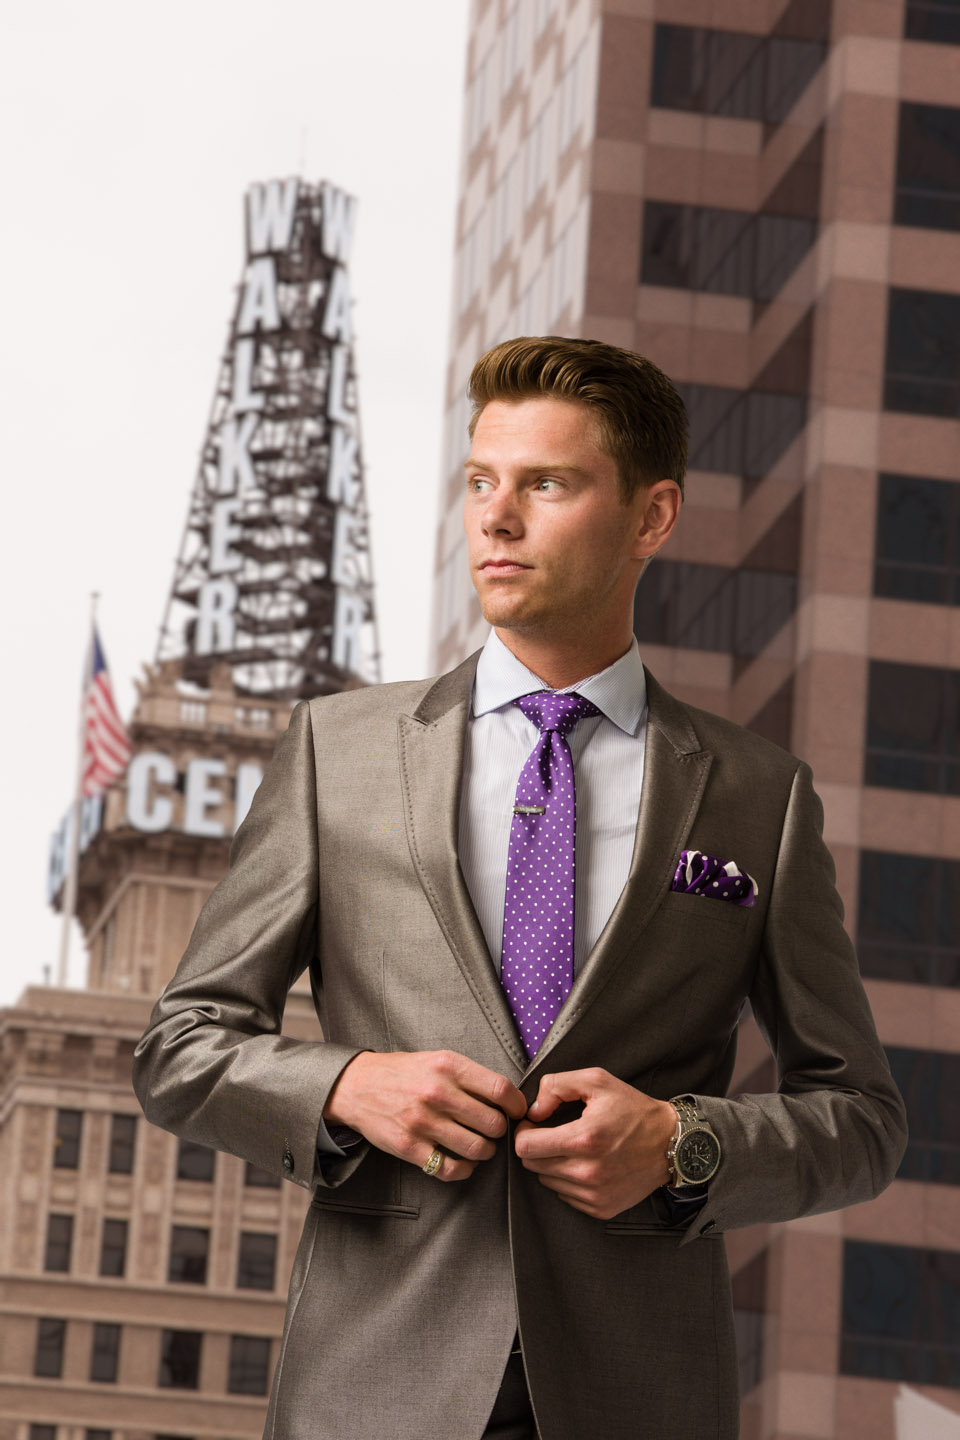 Hunter's Fashion Shoot in Studio and Added to a City Scape